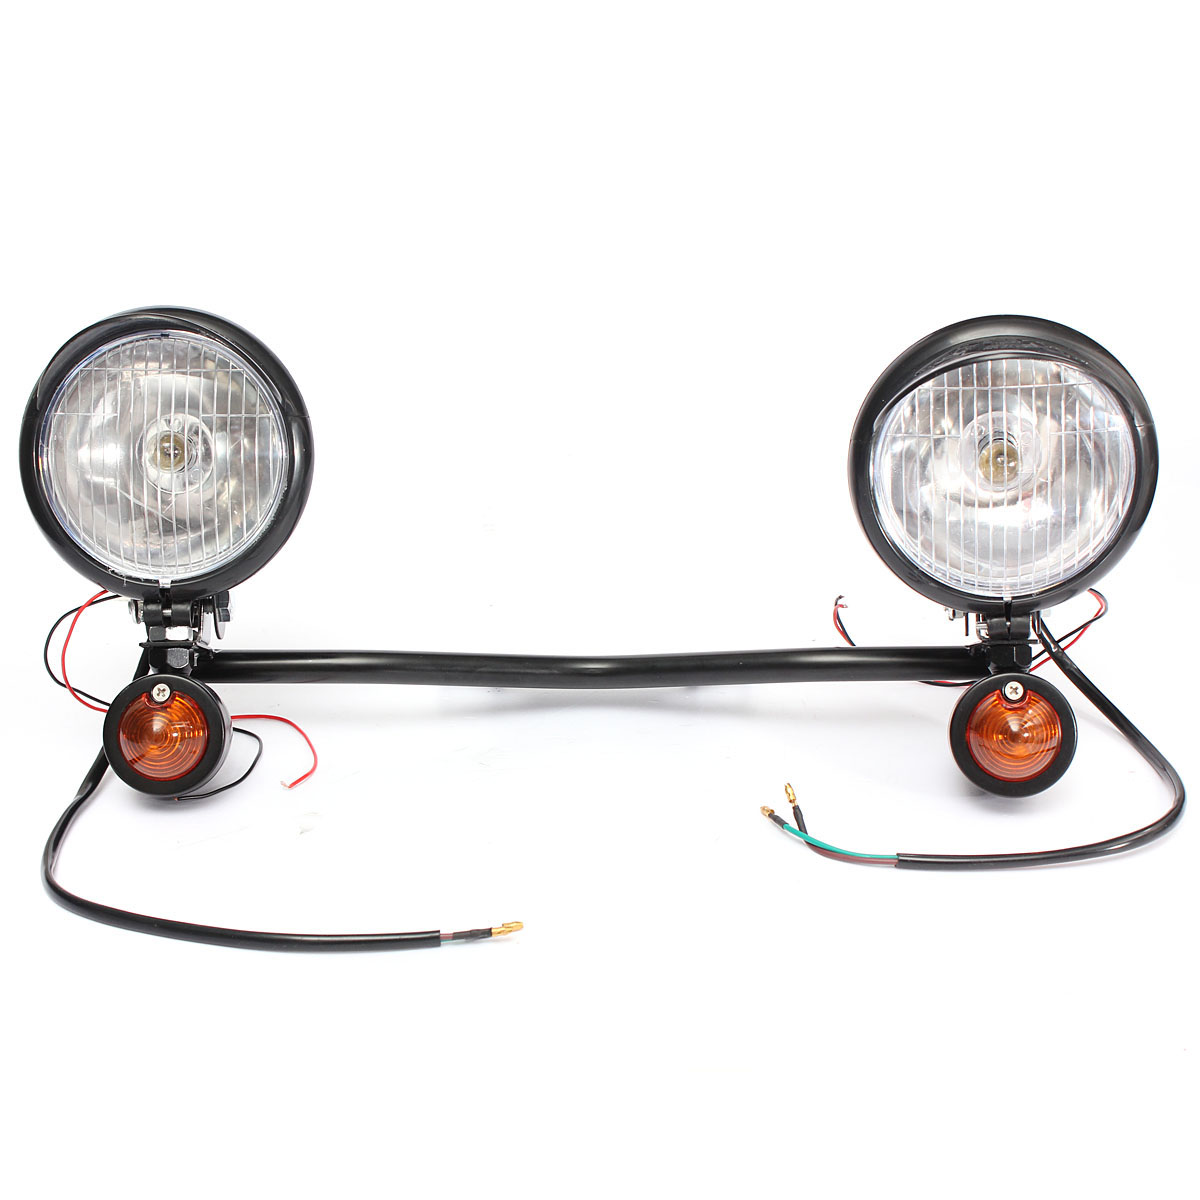 motorcycle spot light lamp bar set turn signal bracket for